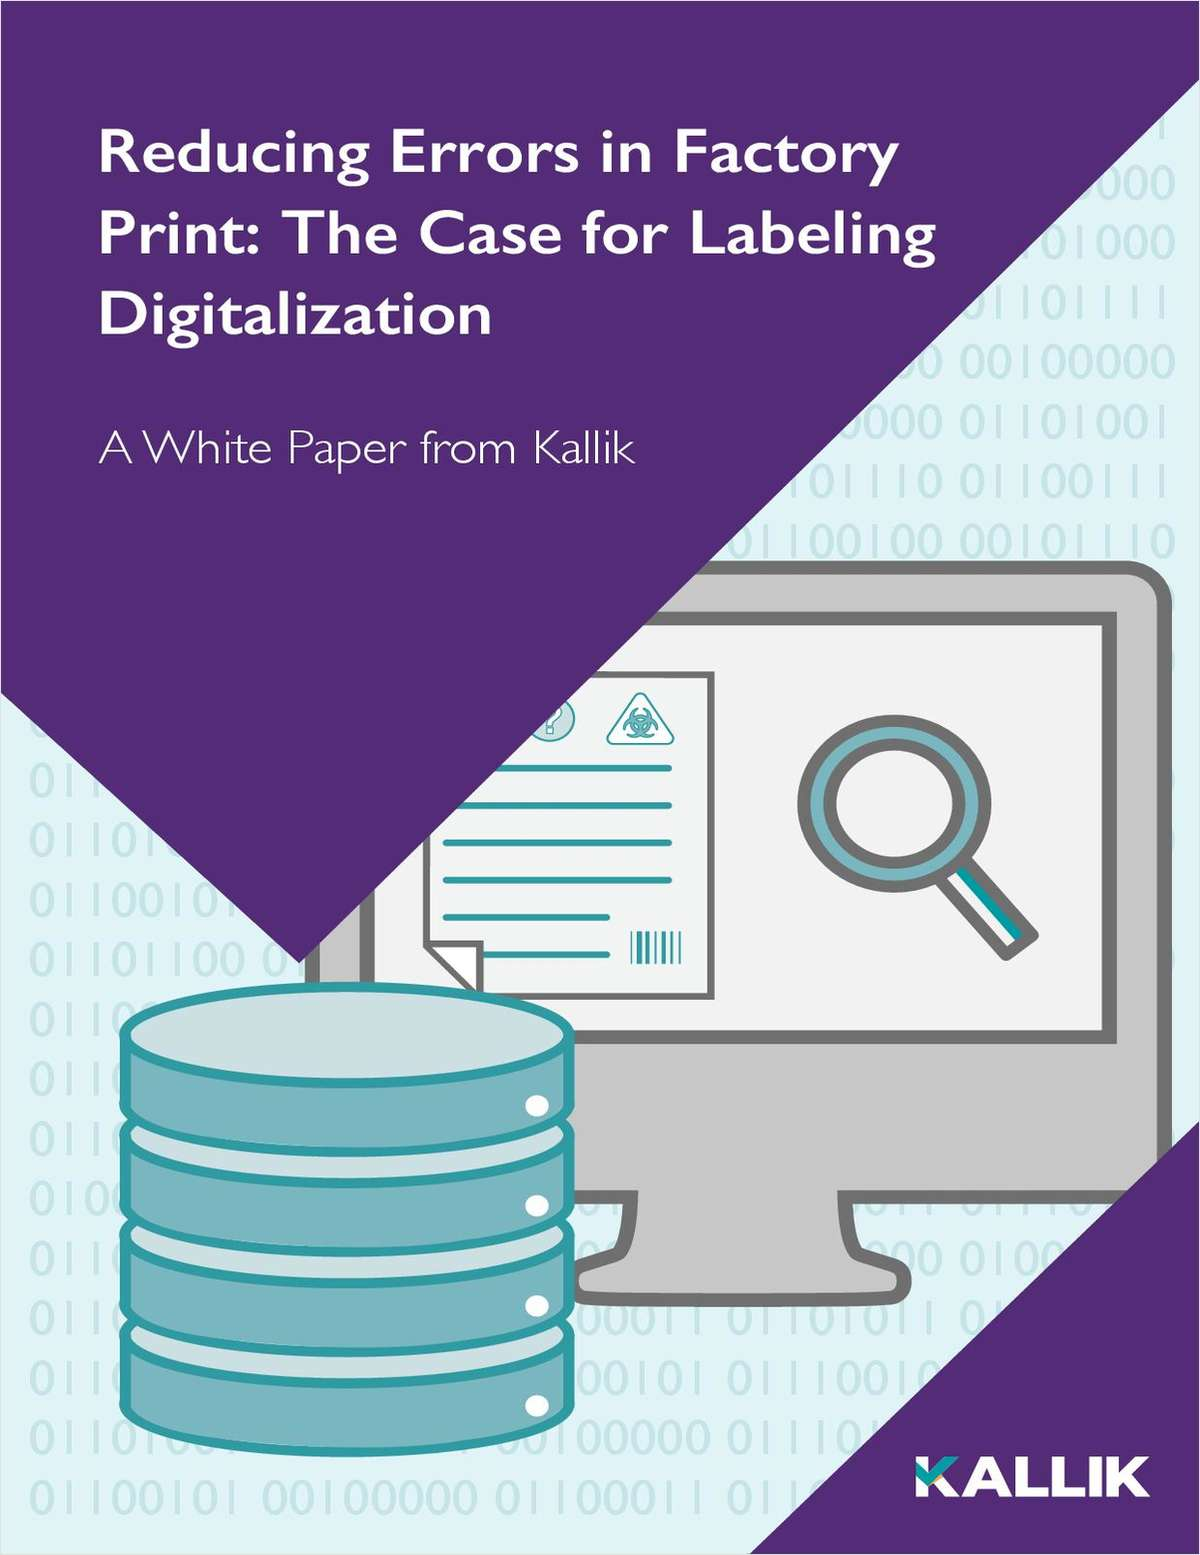 Reducing Errors in Factory Print: The Case for Labeling Digitalization